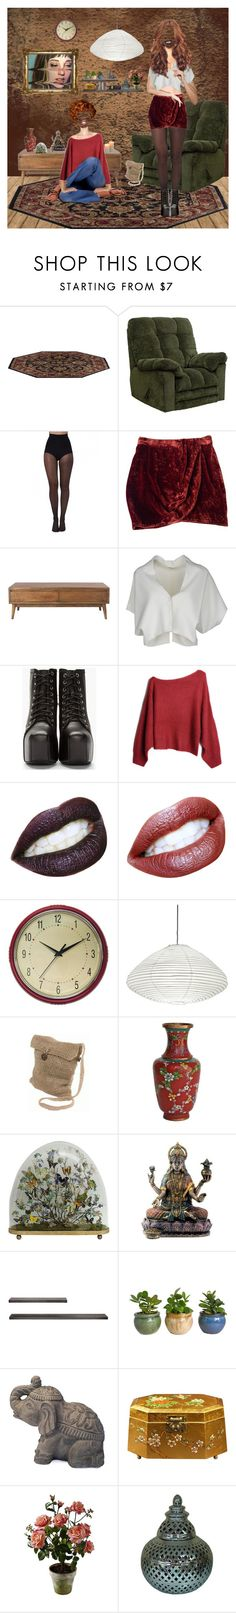 """""""Pogo"""" by robynv316 ❤ liked on Polyvore featuring Flash Furniture, Pretty Polly, Heimstone, Home Decorators Collection, Vionnet, Jeffrey Campbell, Geneva, Found by Fab, TEN and Eurø Style"""